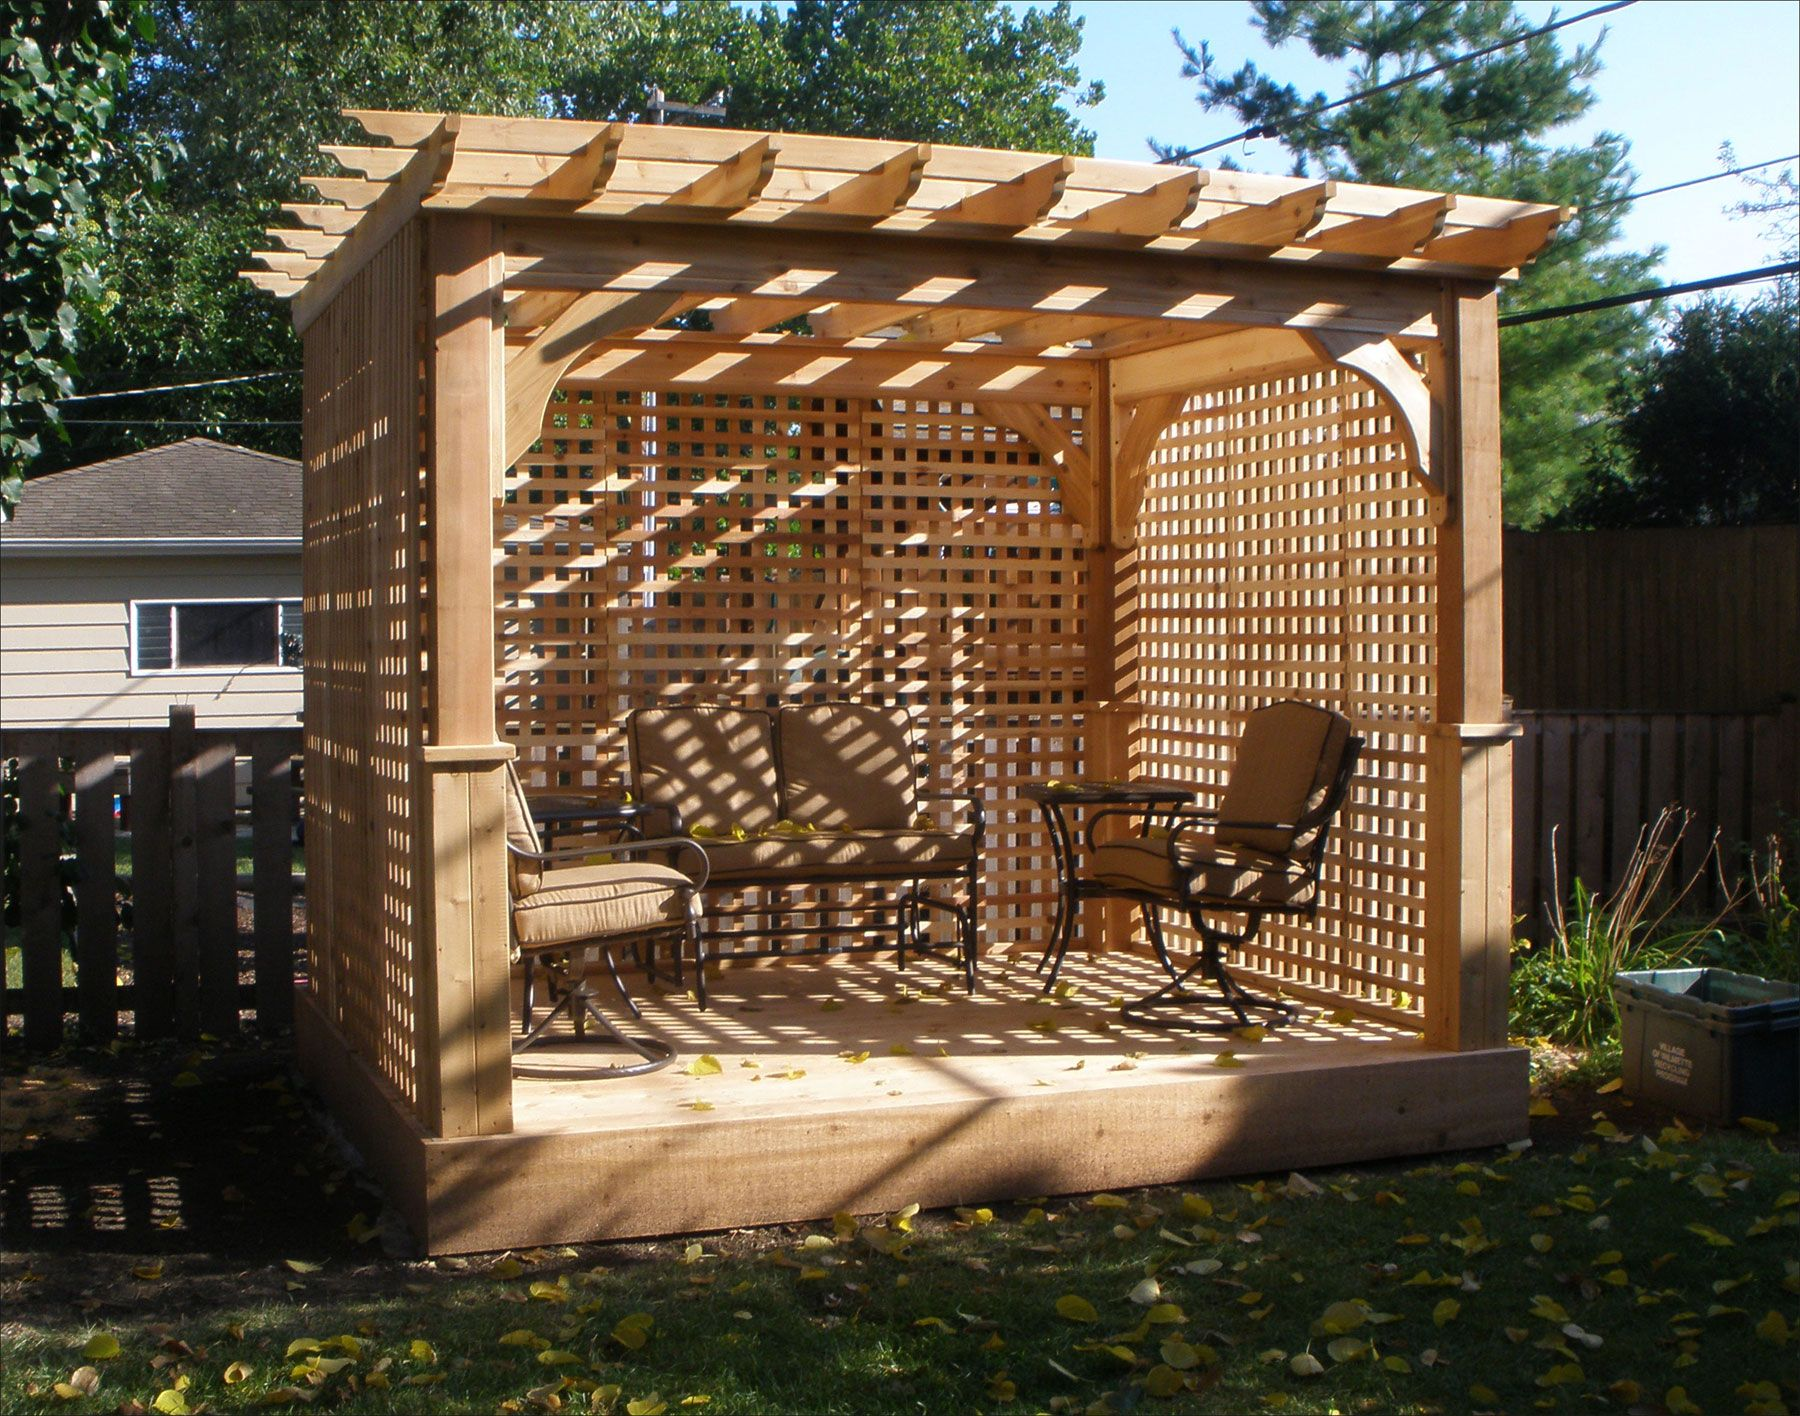 gazebo design software victorian backyard gazebo blueprint cube pavilion wooden gazebo rectangle. Black Bedroom Furniture Sets. Home Design Ideas